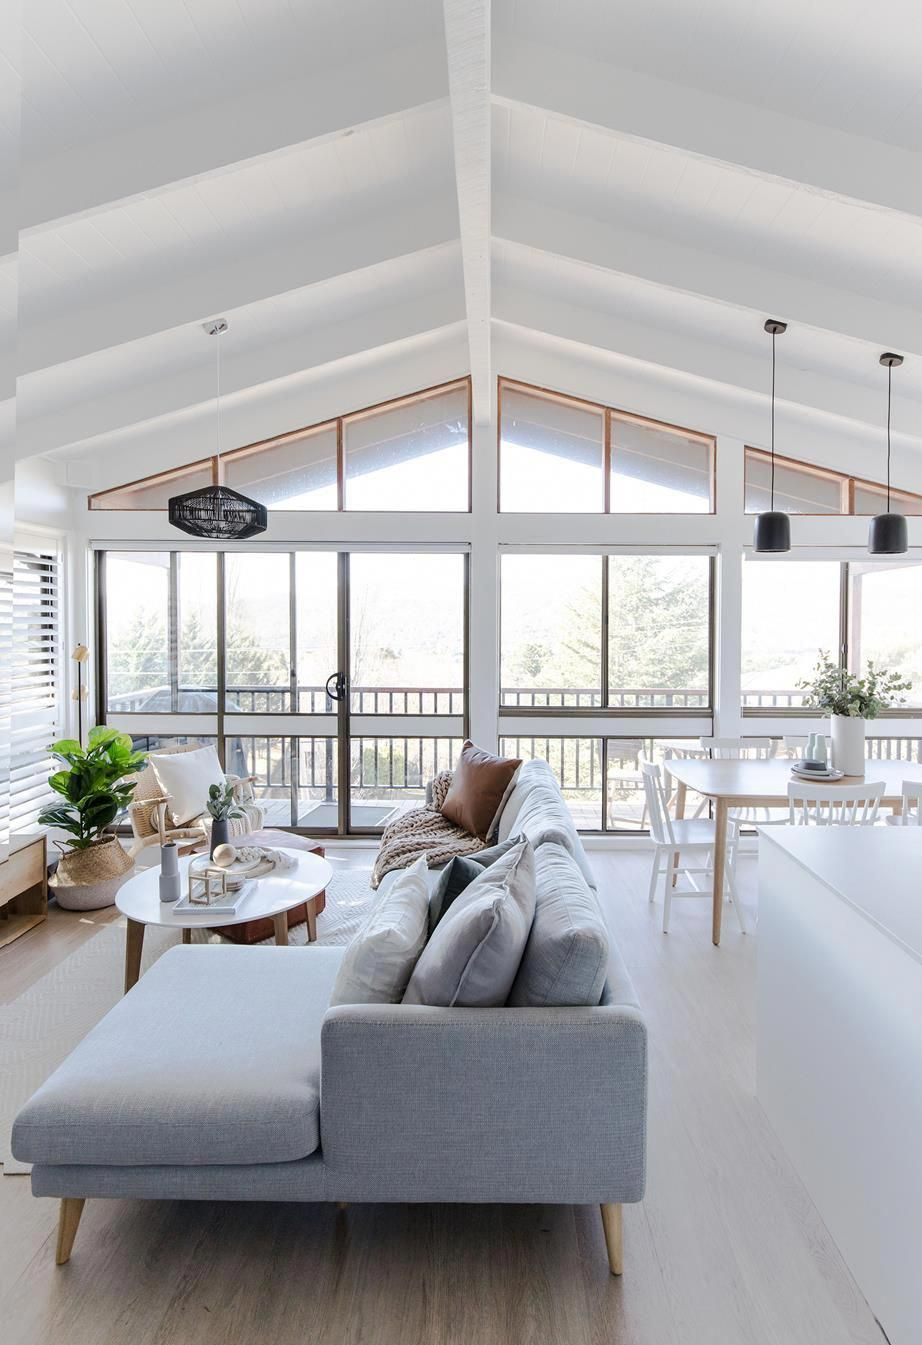 Living Room With White Pitched Ceiling And Exposed Beams With Pendant Lights Pale Blue Couch Wi Trendy Living Rooms Luxury Living Room Living Room Inspiration #pale #blue #living #room